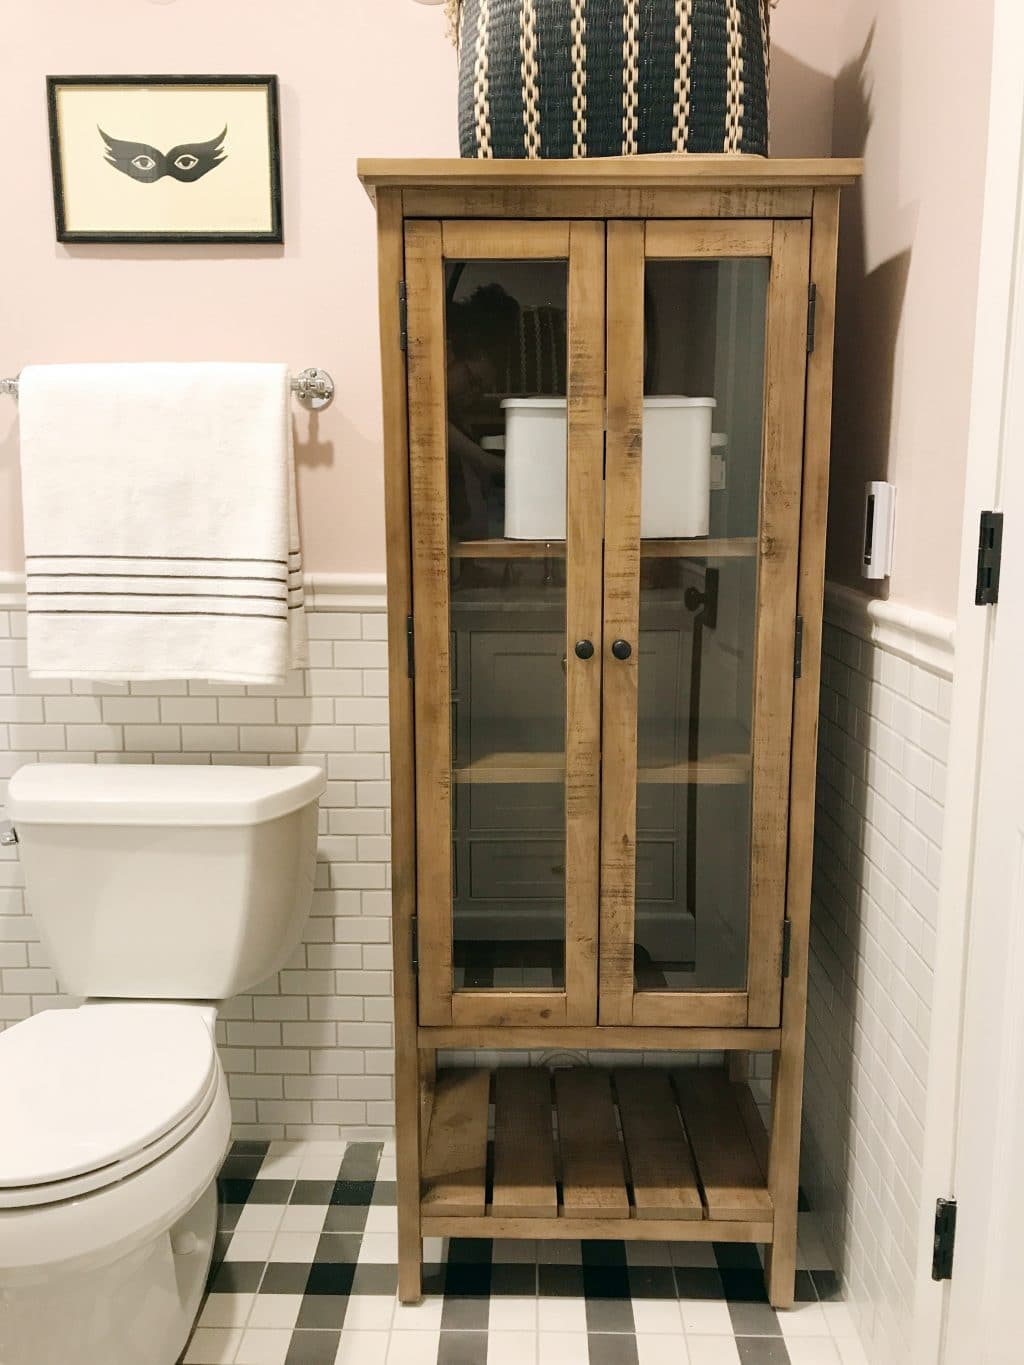 free standing linen cabinets for bathroom today i wanted to share the free-standing linen cabinet we JOZNWSE